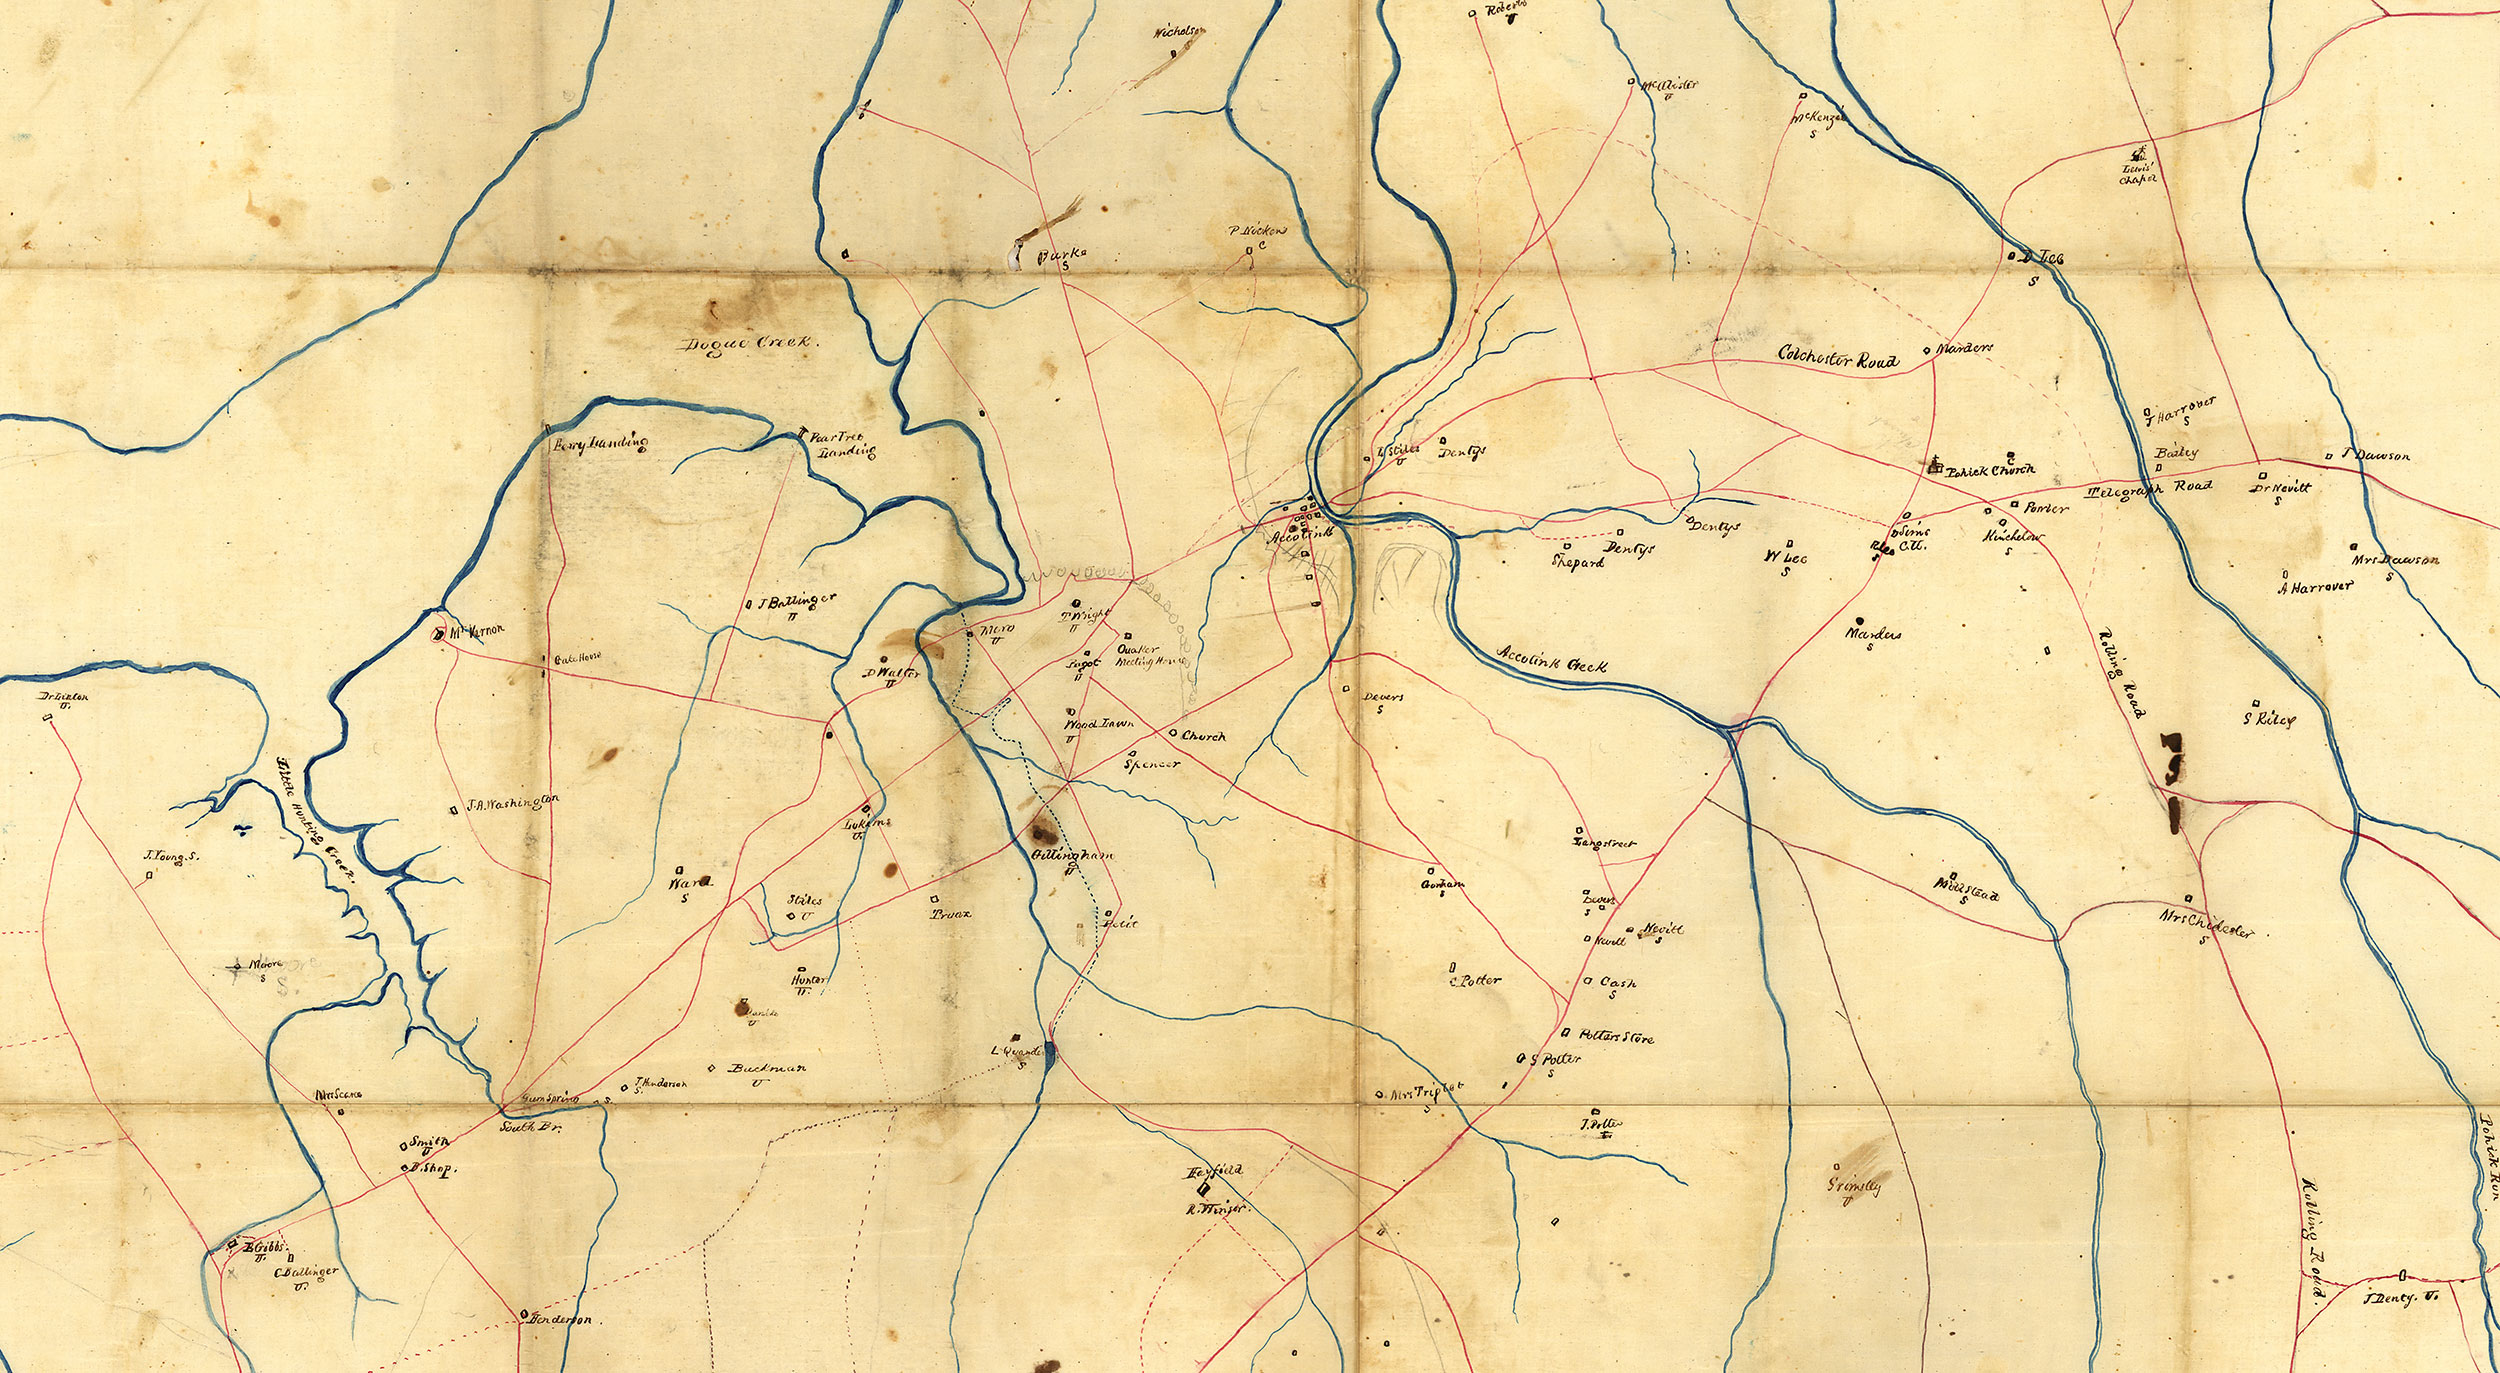 Civil War maps at the Library of Congress- Mapping the